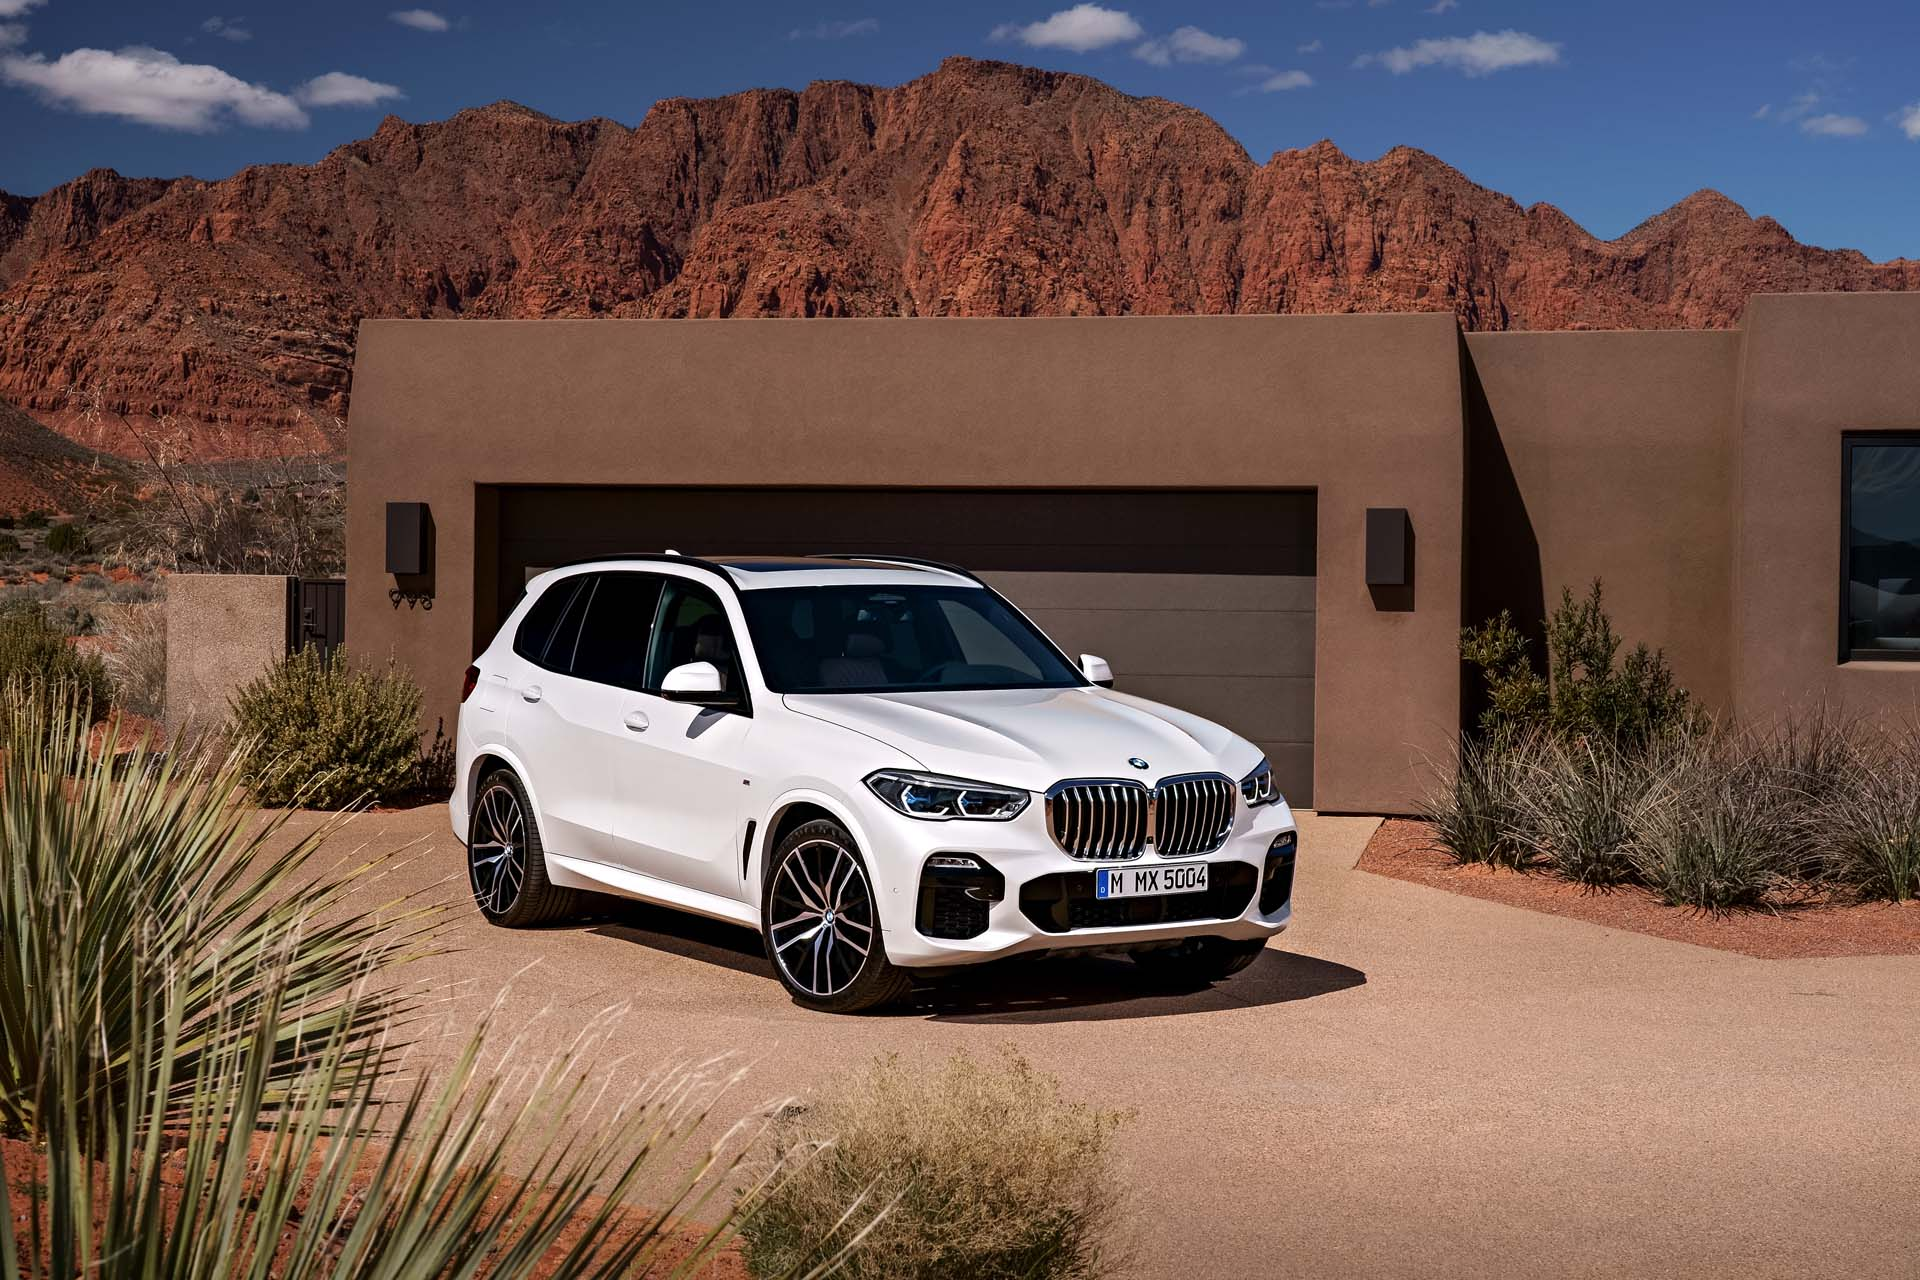 2019 Bmw X5 Costs 61 695 To Start Country Club